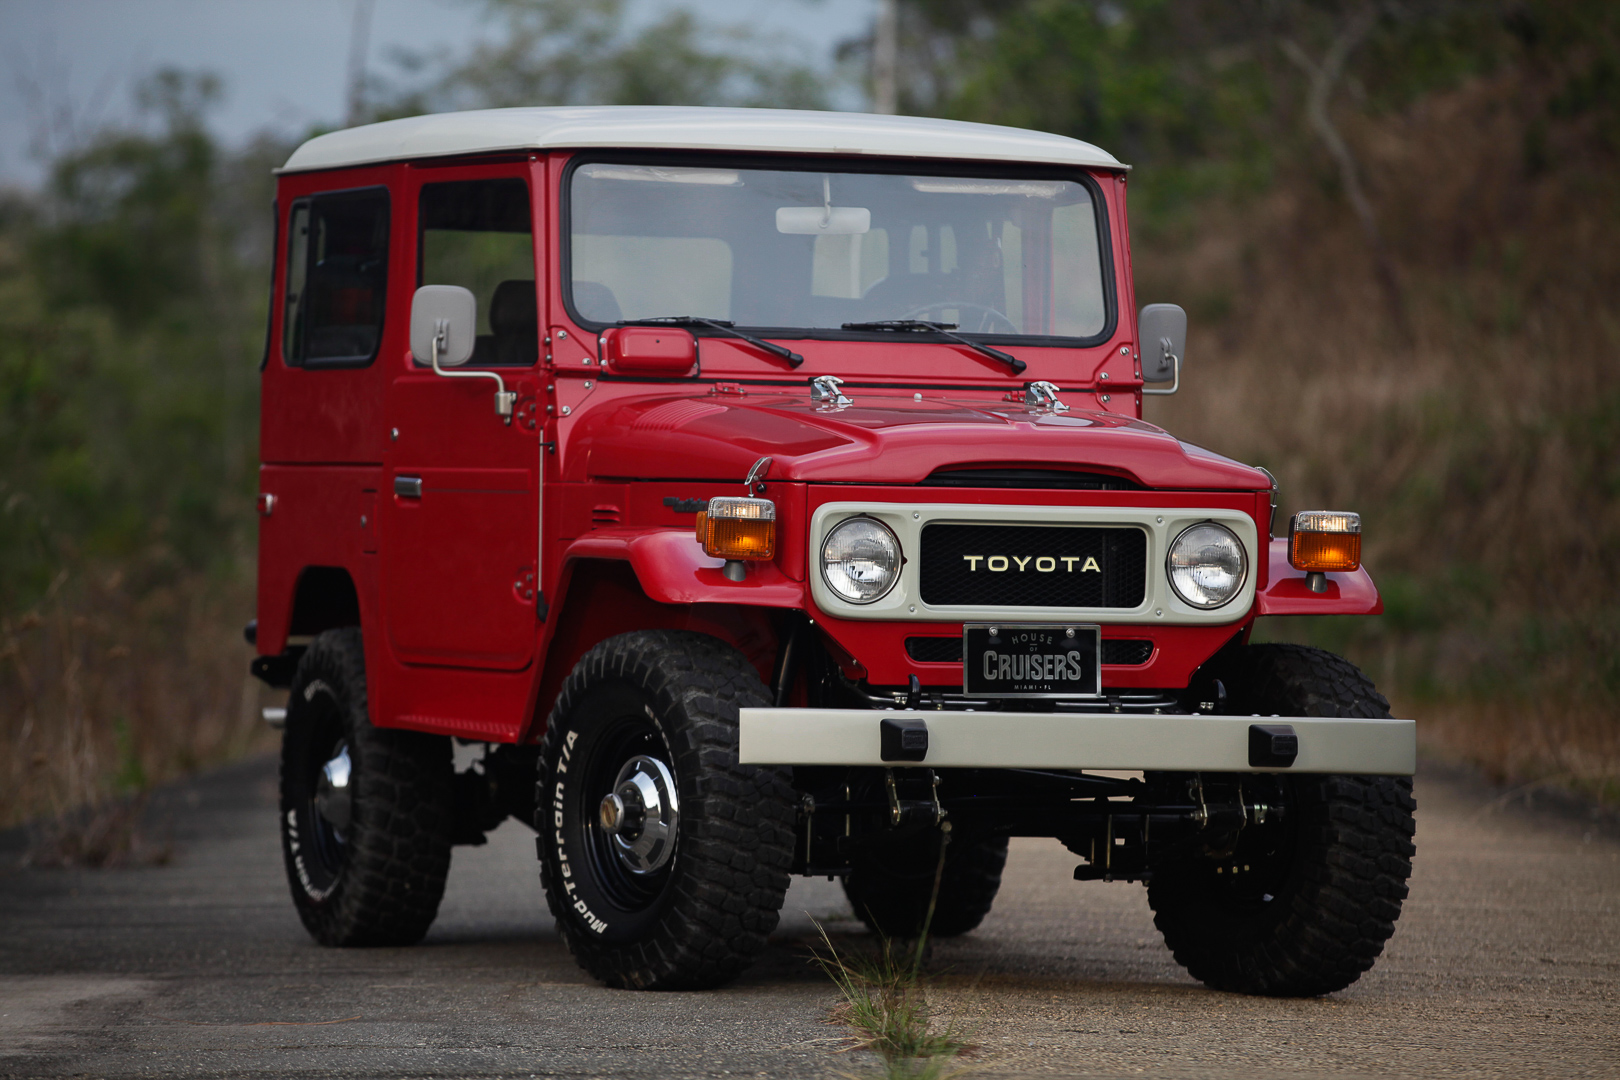 1982 FJ40 – FREEBORN RED – House Of Cruisers